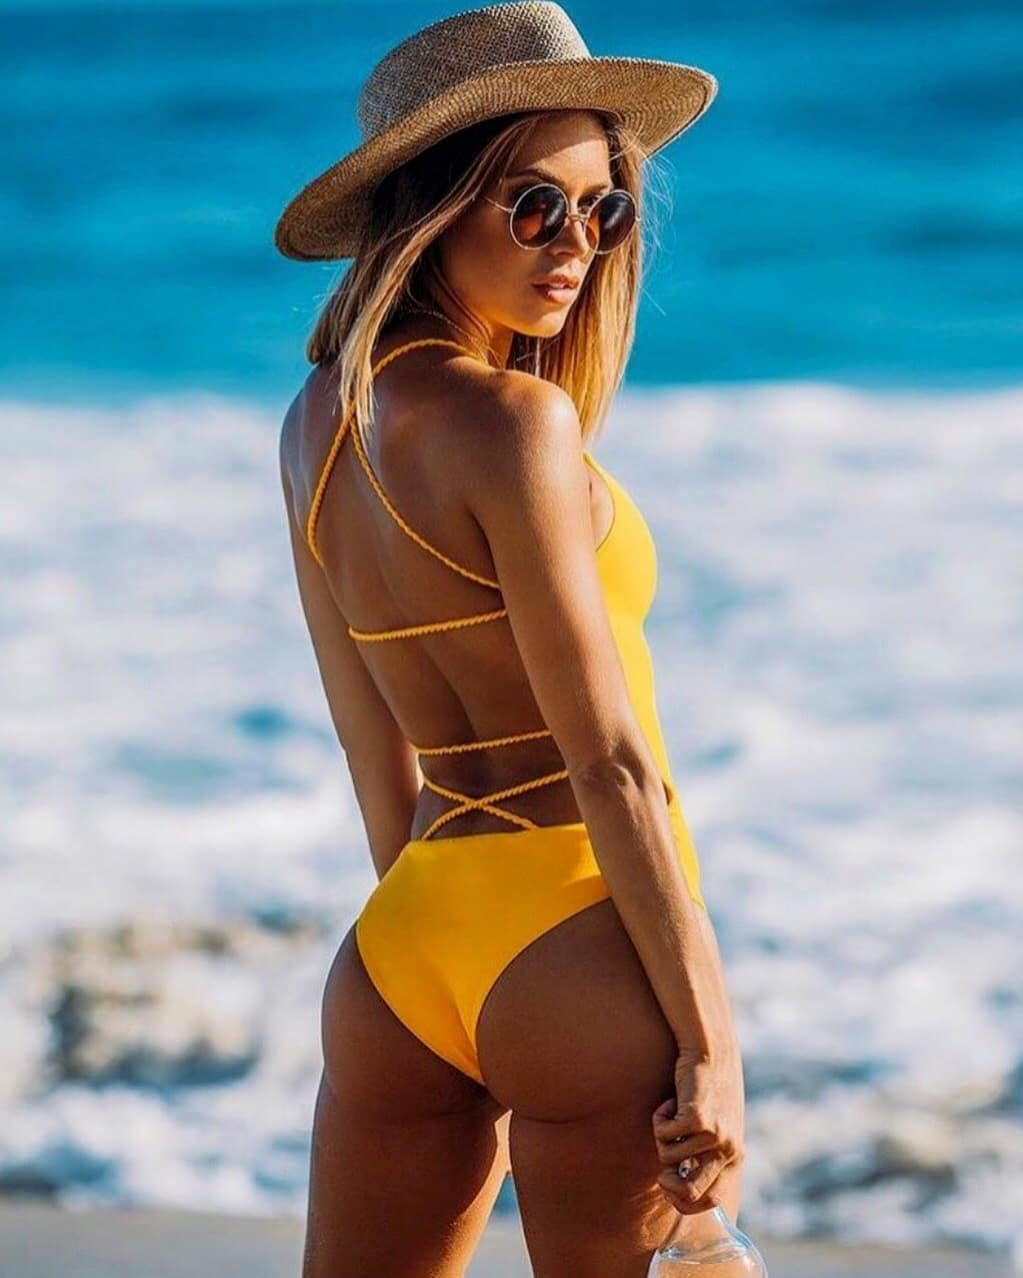 Bright Yellow Swimsuit With Spaghetti Straps For Summer Vacation 2020